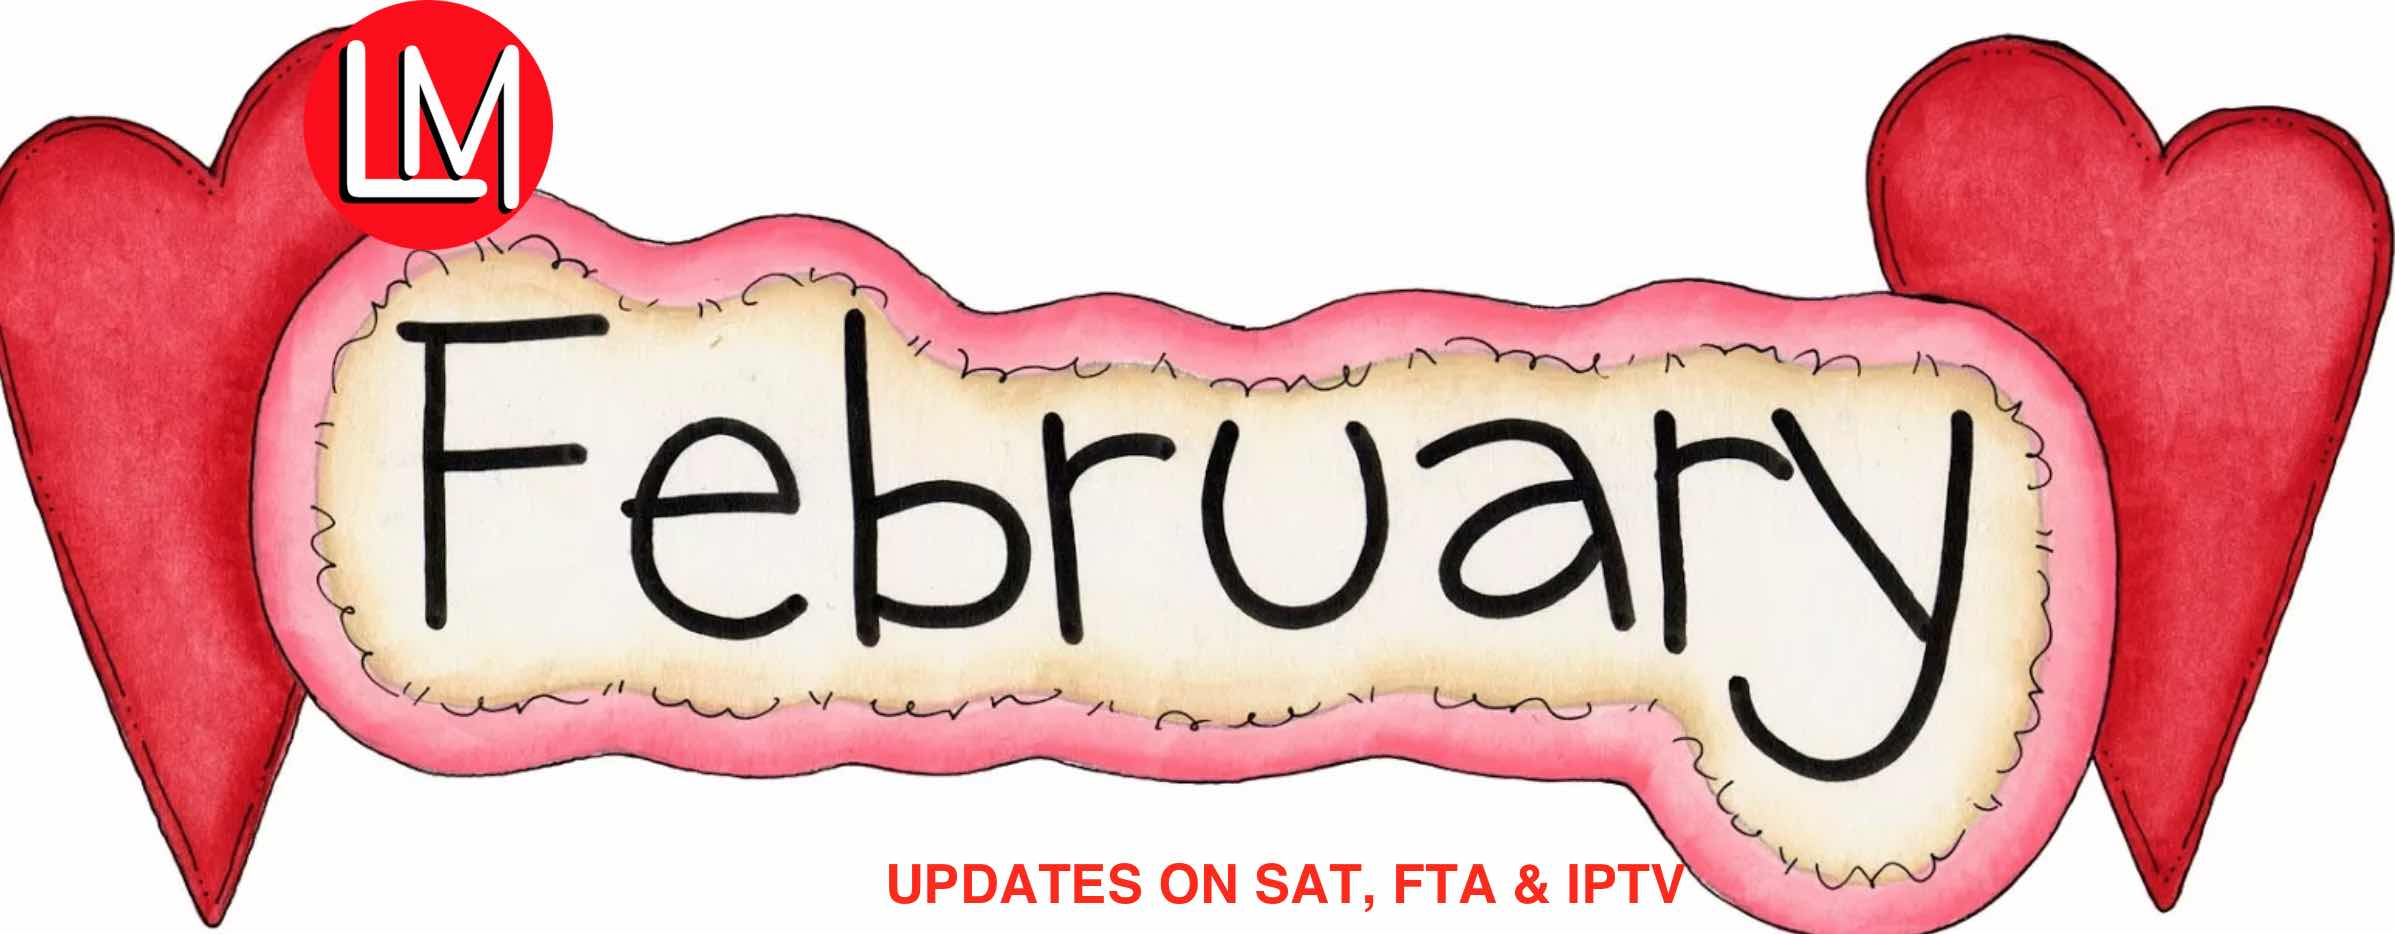 Lemmy Morgan February 2019 Update: IPTV, Sks, Iks, FTA and Data